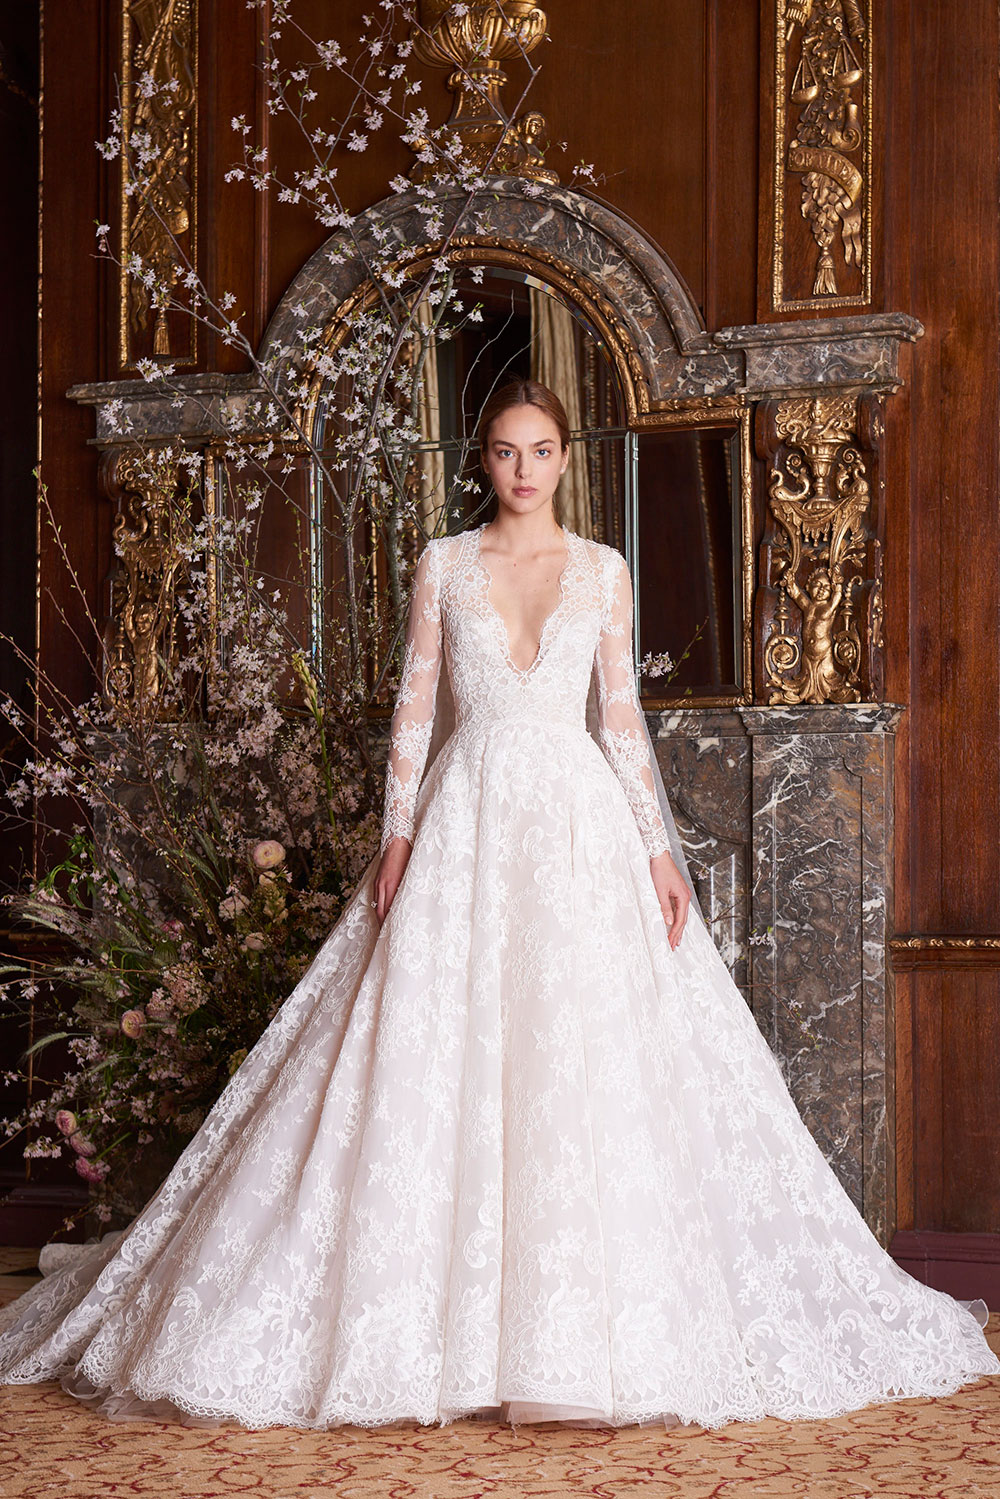 – Monique Lhuillier Spring 2019 Bridal Collection. www.theweddingnotebook.com